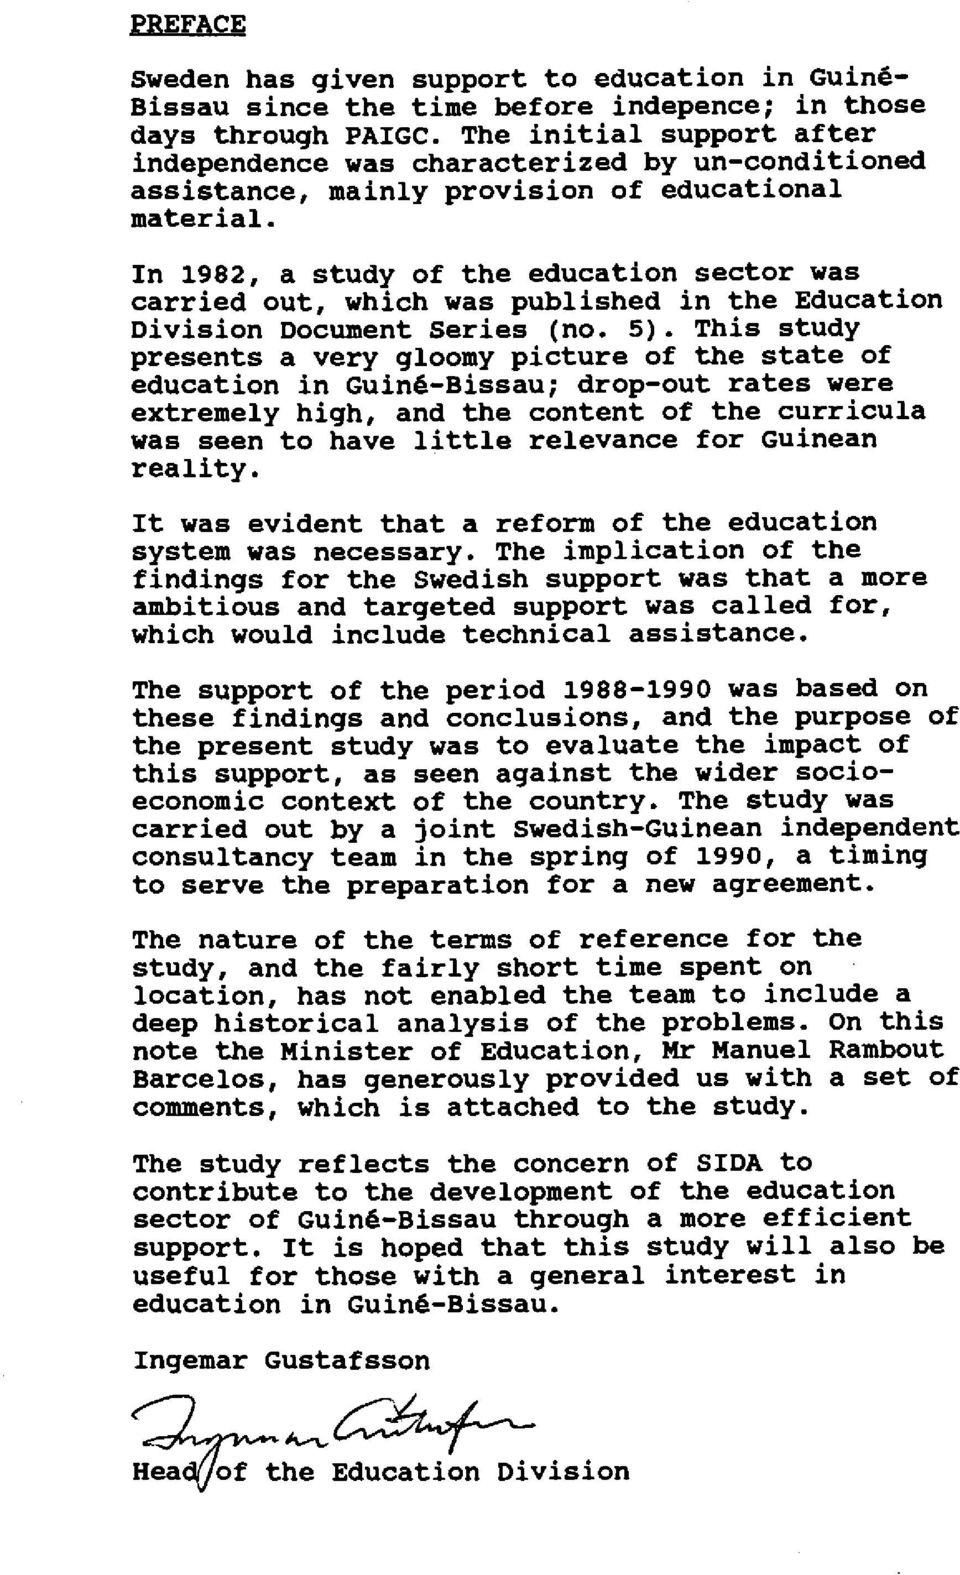 In 1982, a study of the education sector was carried out, which was published in the Education Division Document Series (no. 5).